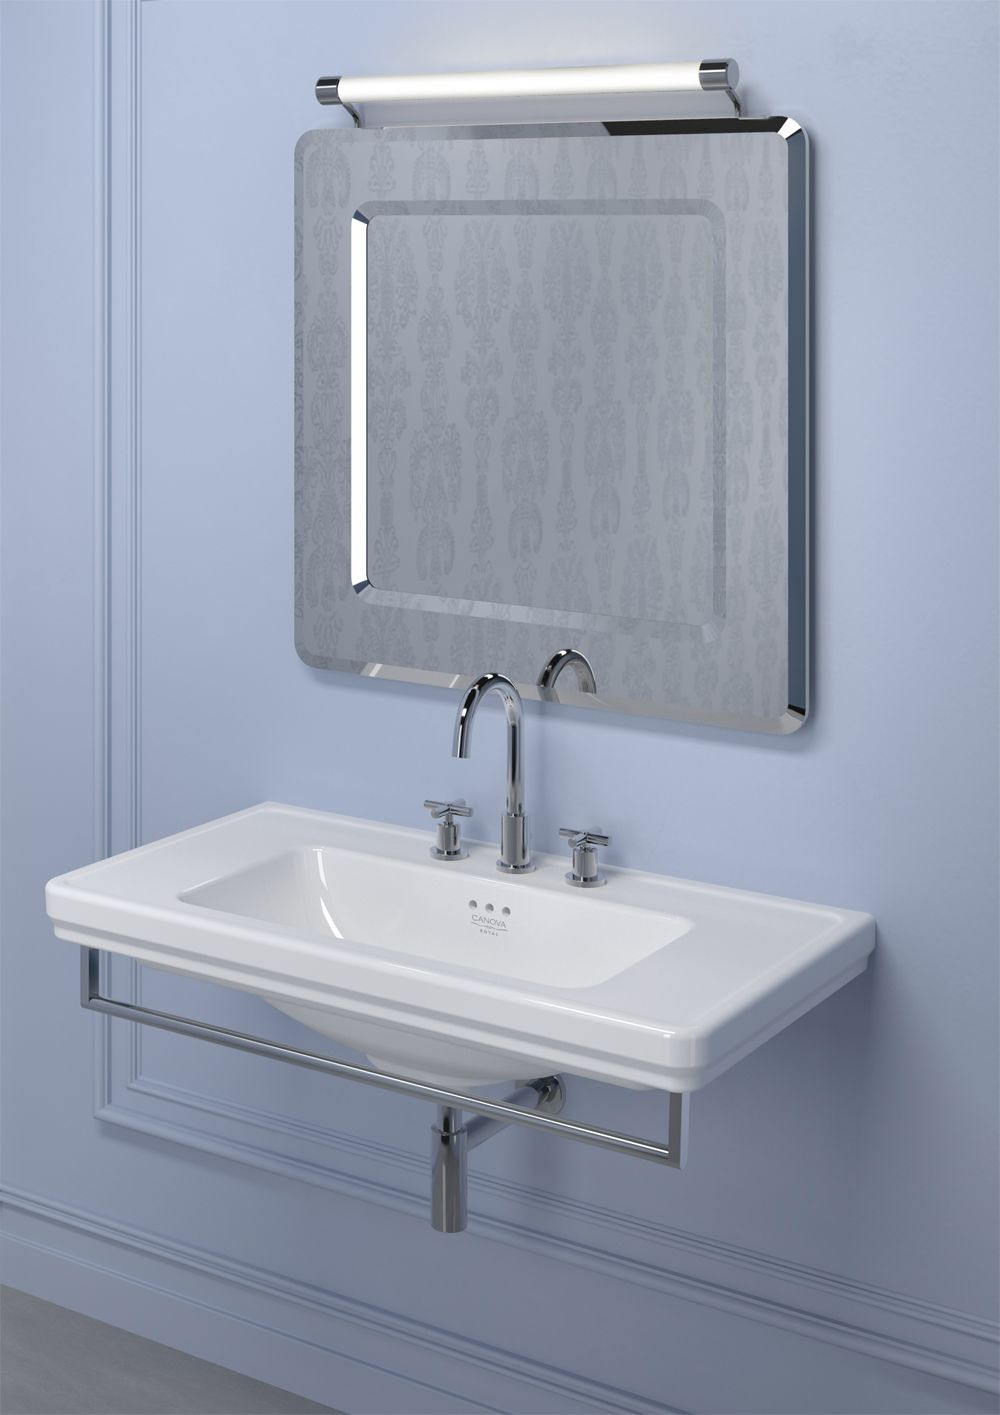 Standard toilet seat dimensions  Canova Royal  washbasin has a regular shape wide dimensions and